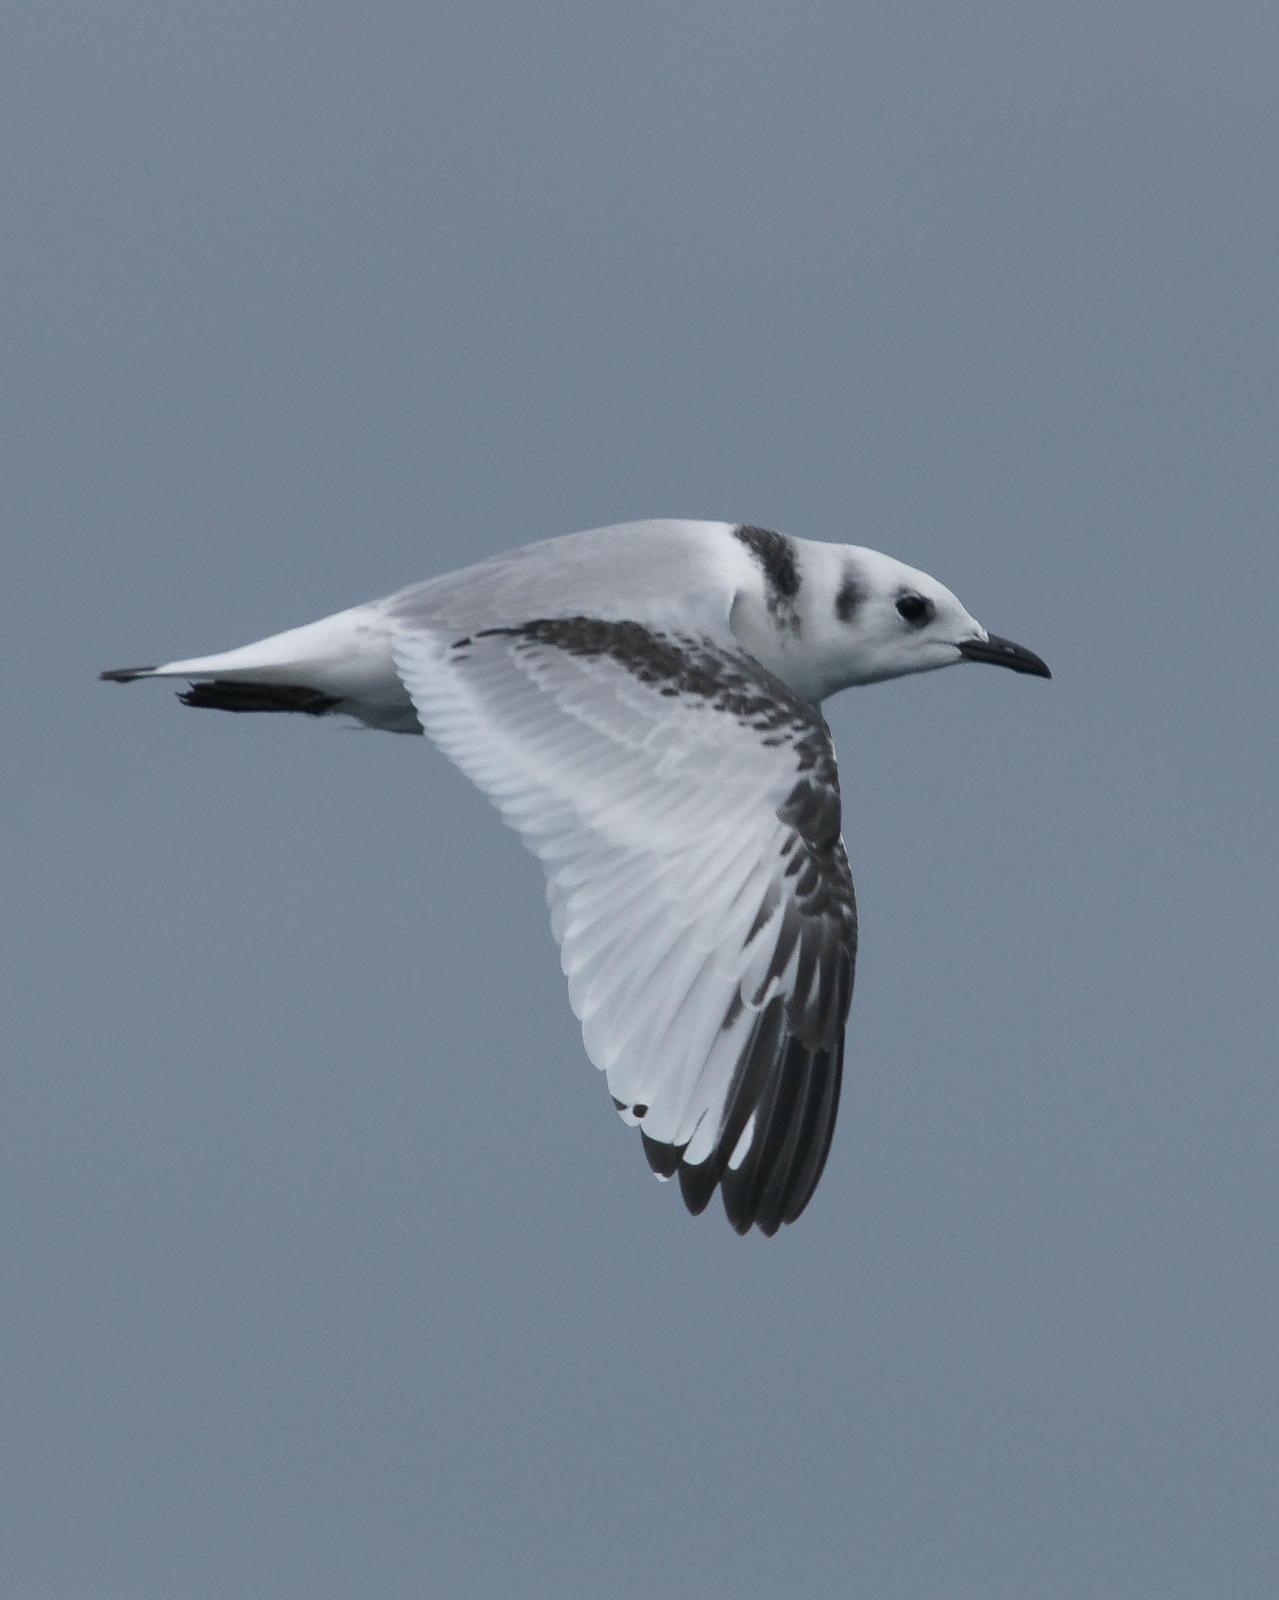 Black-legged Kittiwake Photo by Steve Percival